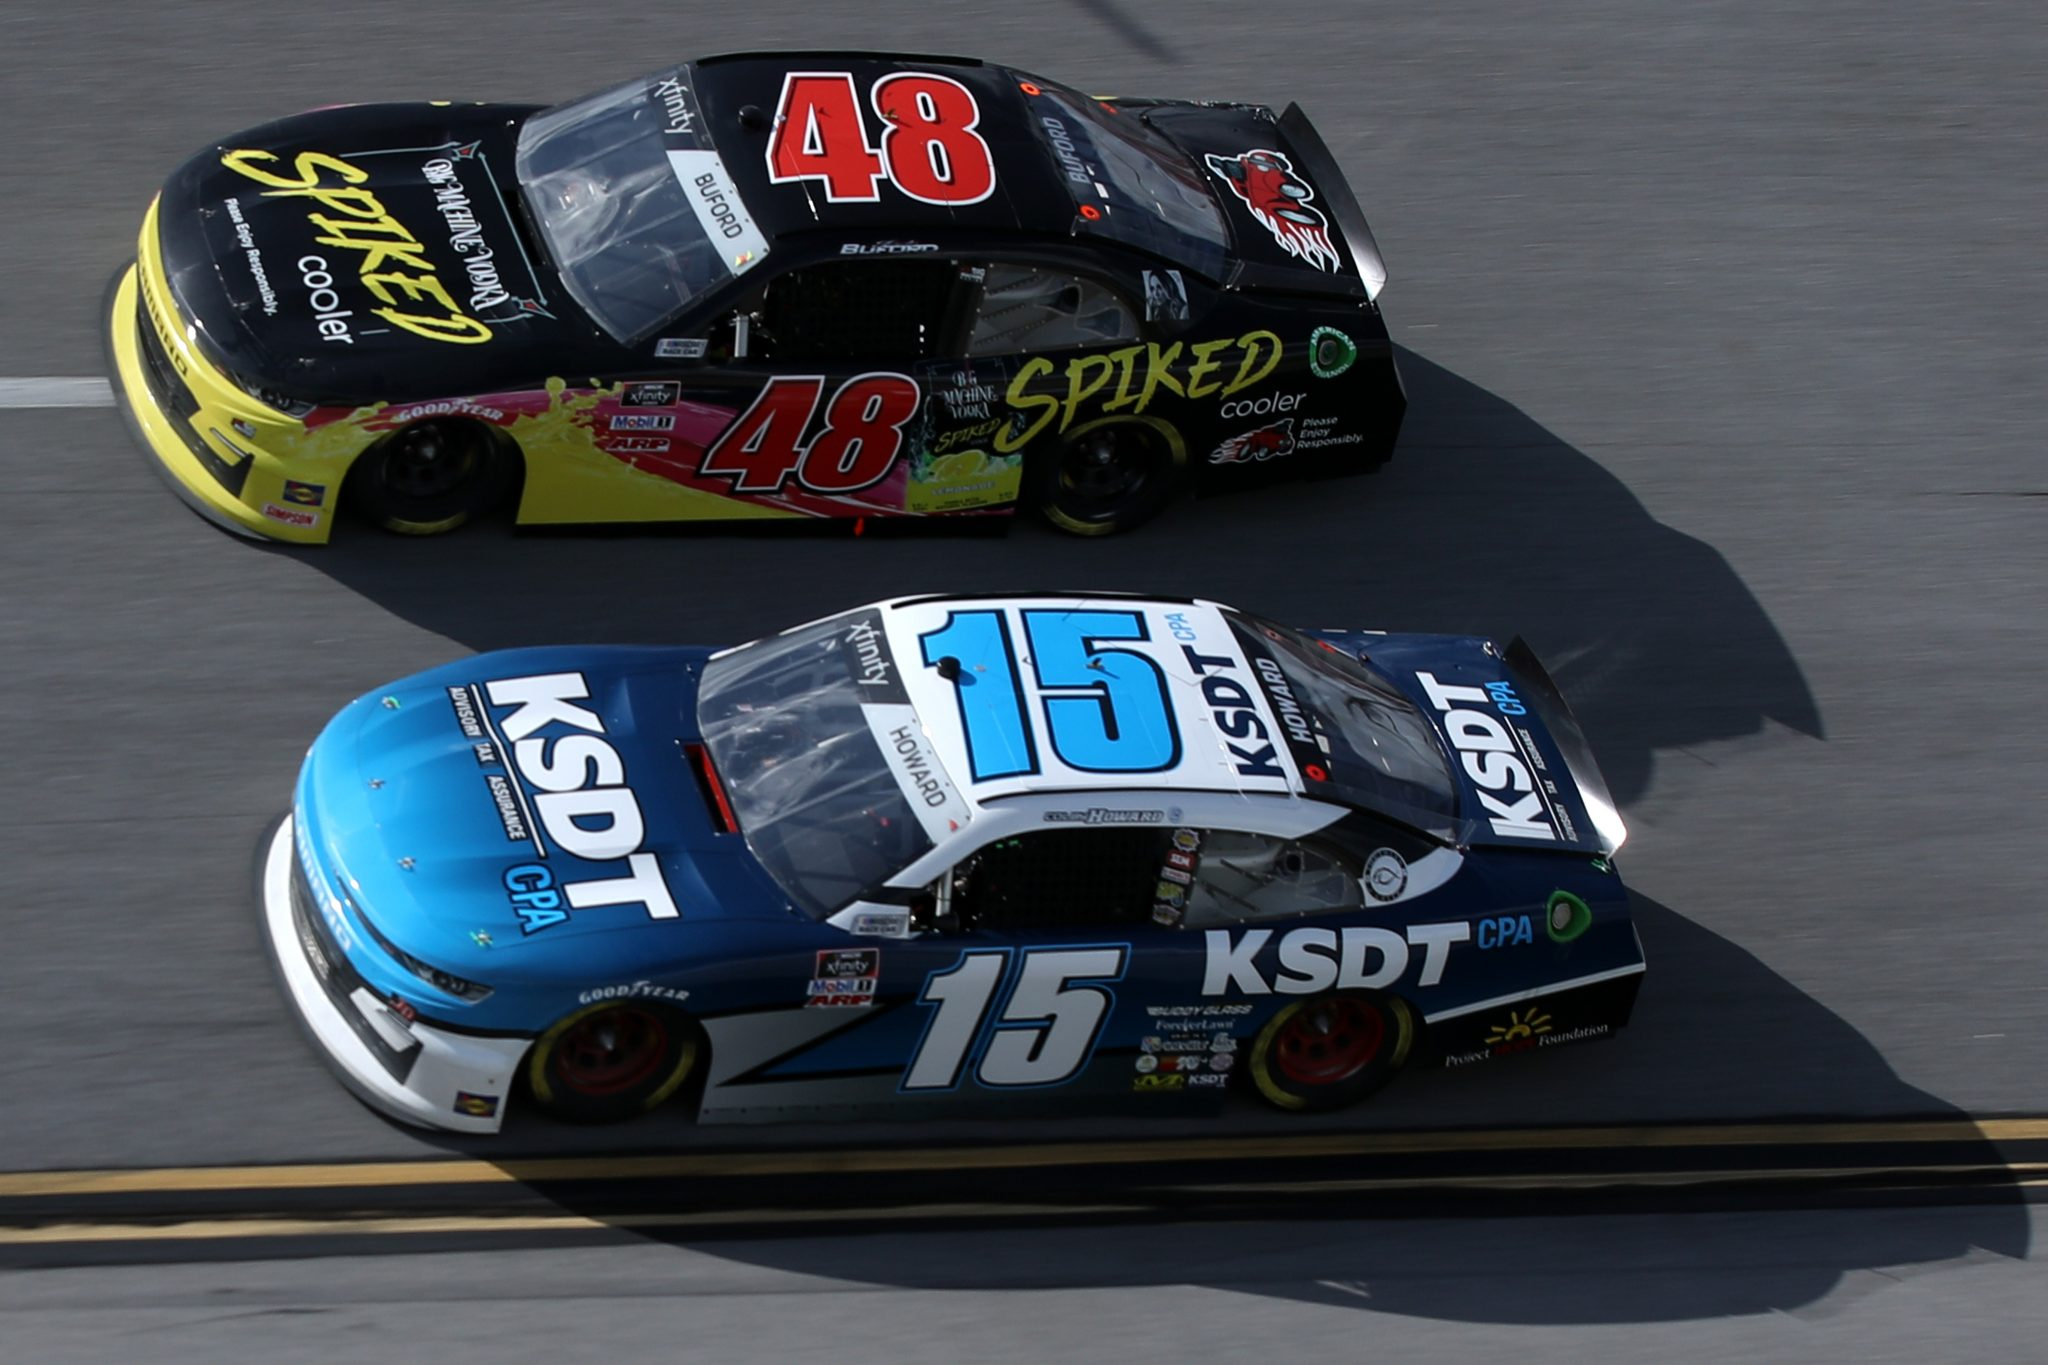 TALLADEGA, ALABAMA - APRIL 24: Colby Howard, driver of the #15 KSDT CPA Chevrolet, and Jade Buford, driver of the #48 Big Machine Spiked Coolers Chevrolet, race during the NASCAR Xfinity Series Ag-Pro 300 at Talladega Superspeedway on April 24, 2021 in Talladega, Alabama. (Photo by Sean Gardner/Getty Images) | Getty Images